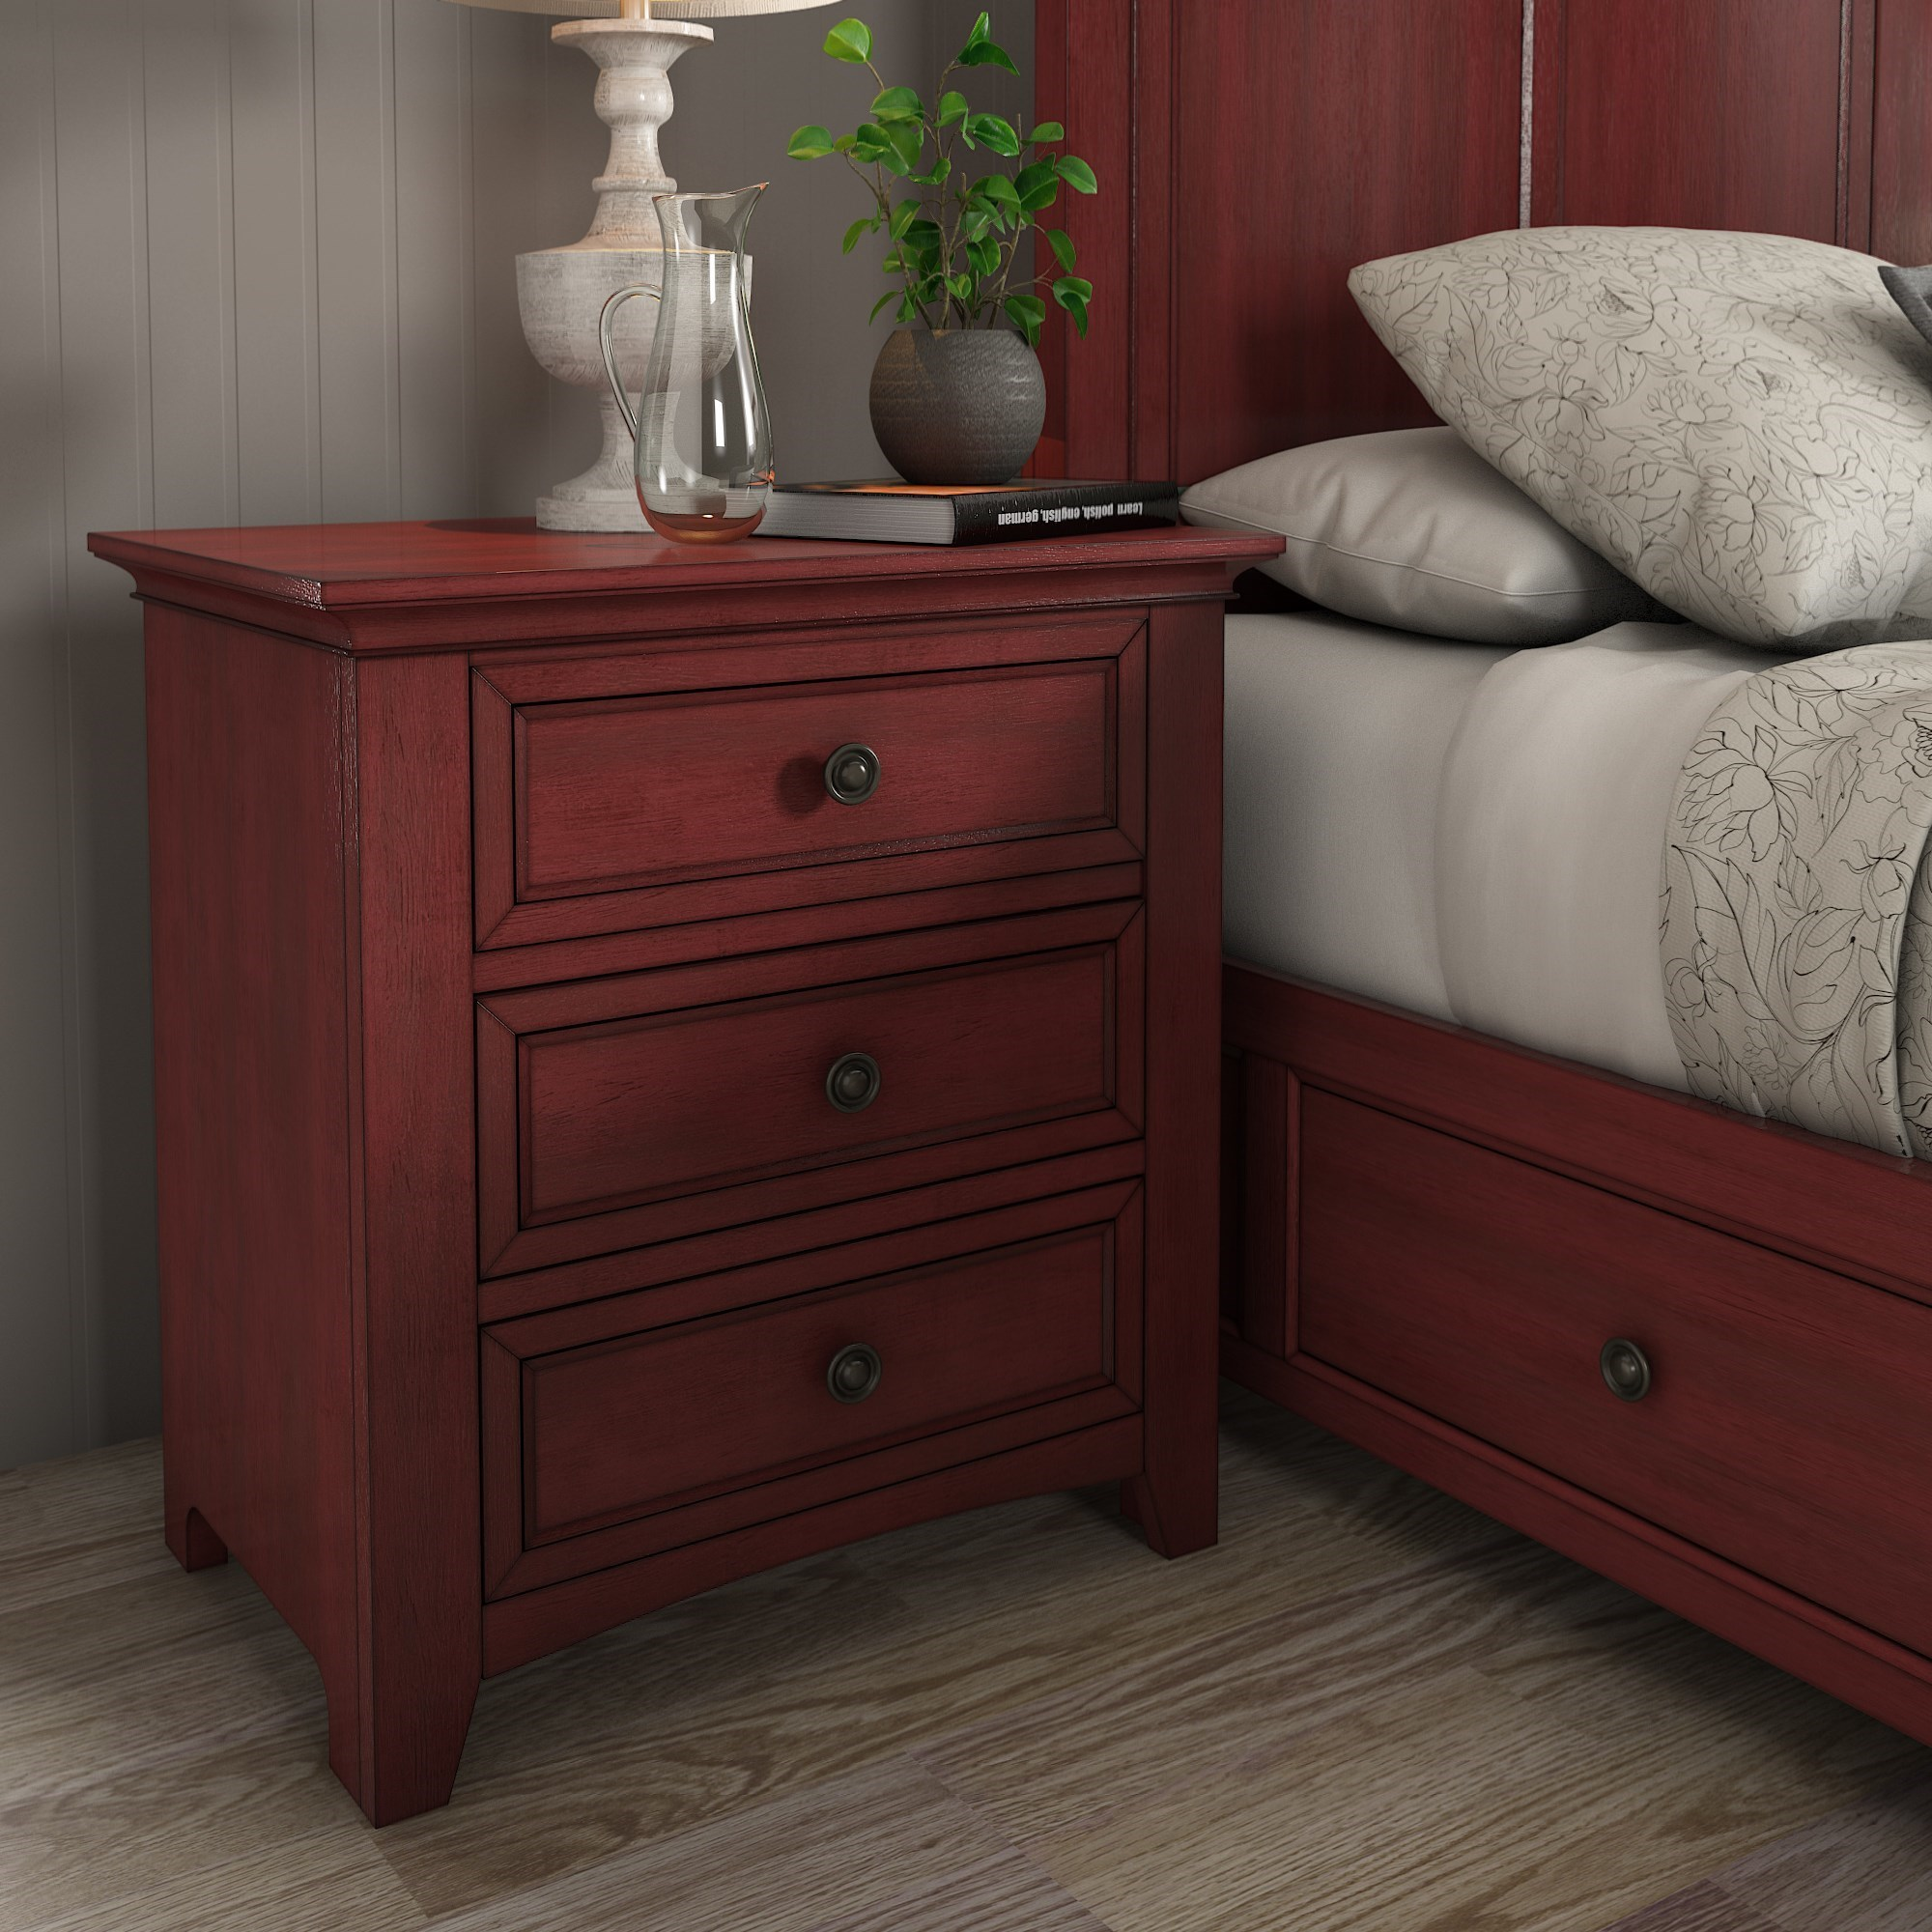 Homelegance 395 Night Stand - Item Number: 395B-4RD